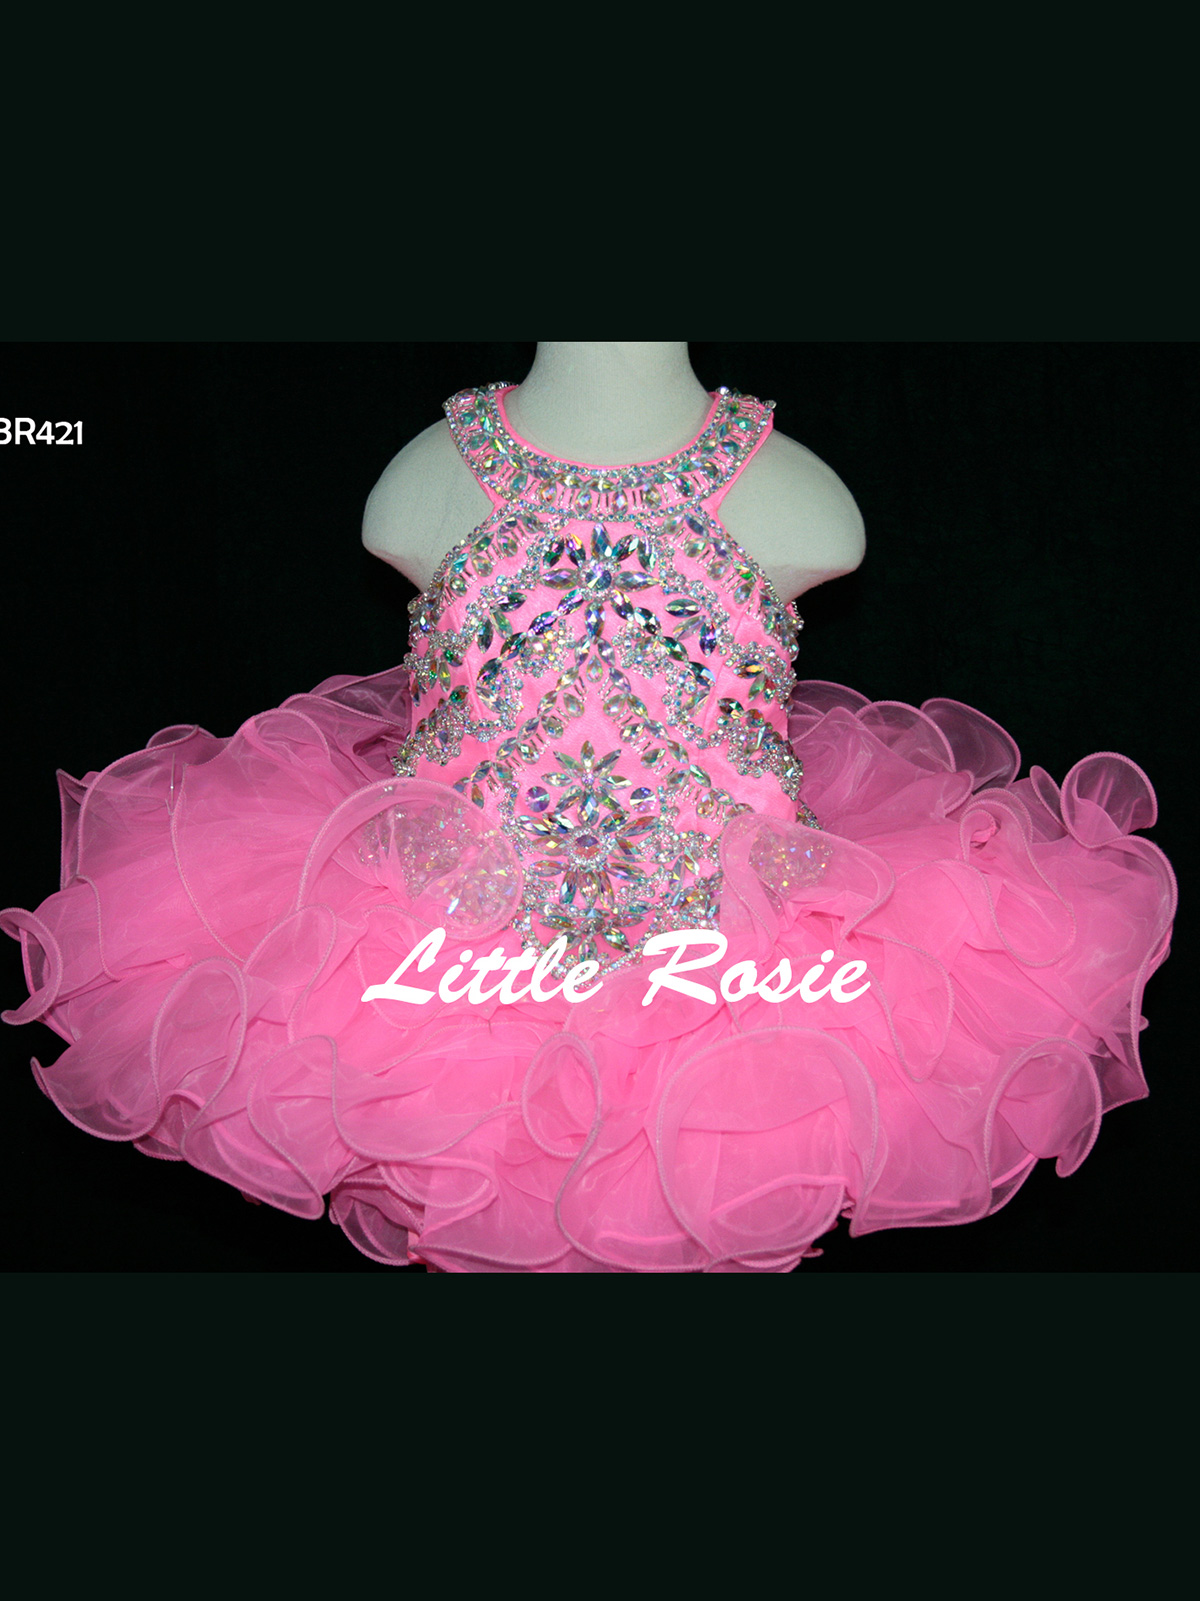 Little Rosie Organza Cupcake Skirt BR421 Pageant Gown PageantDesigns